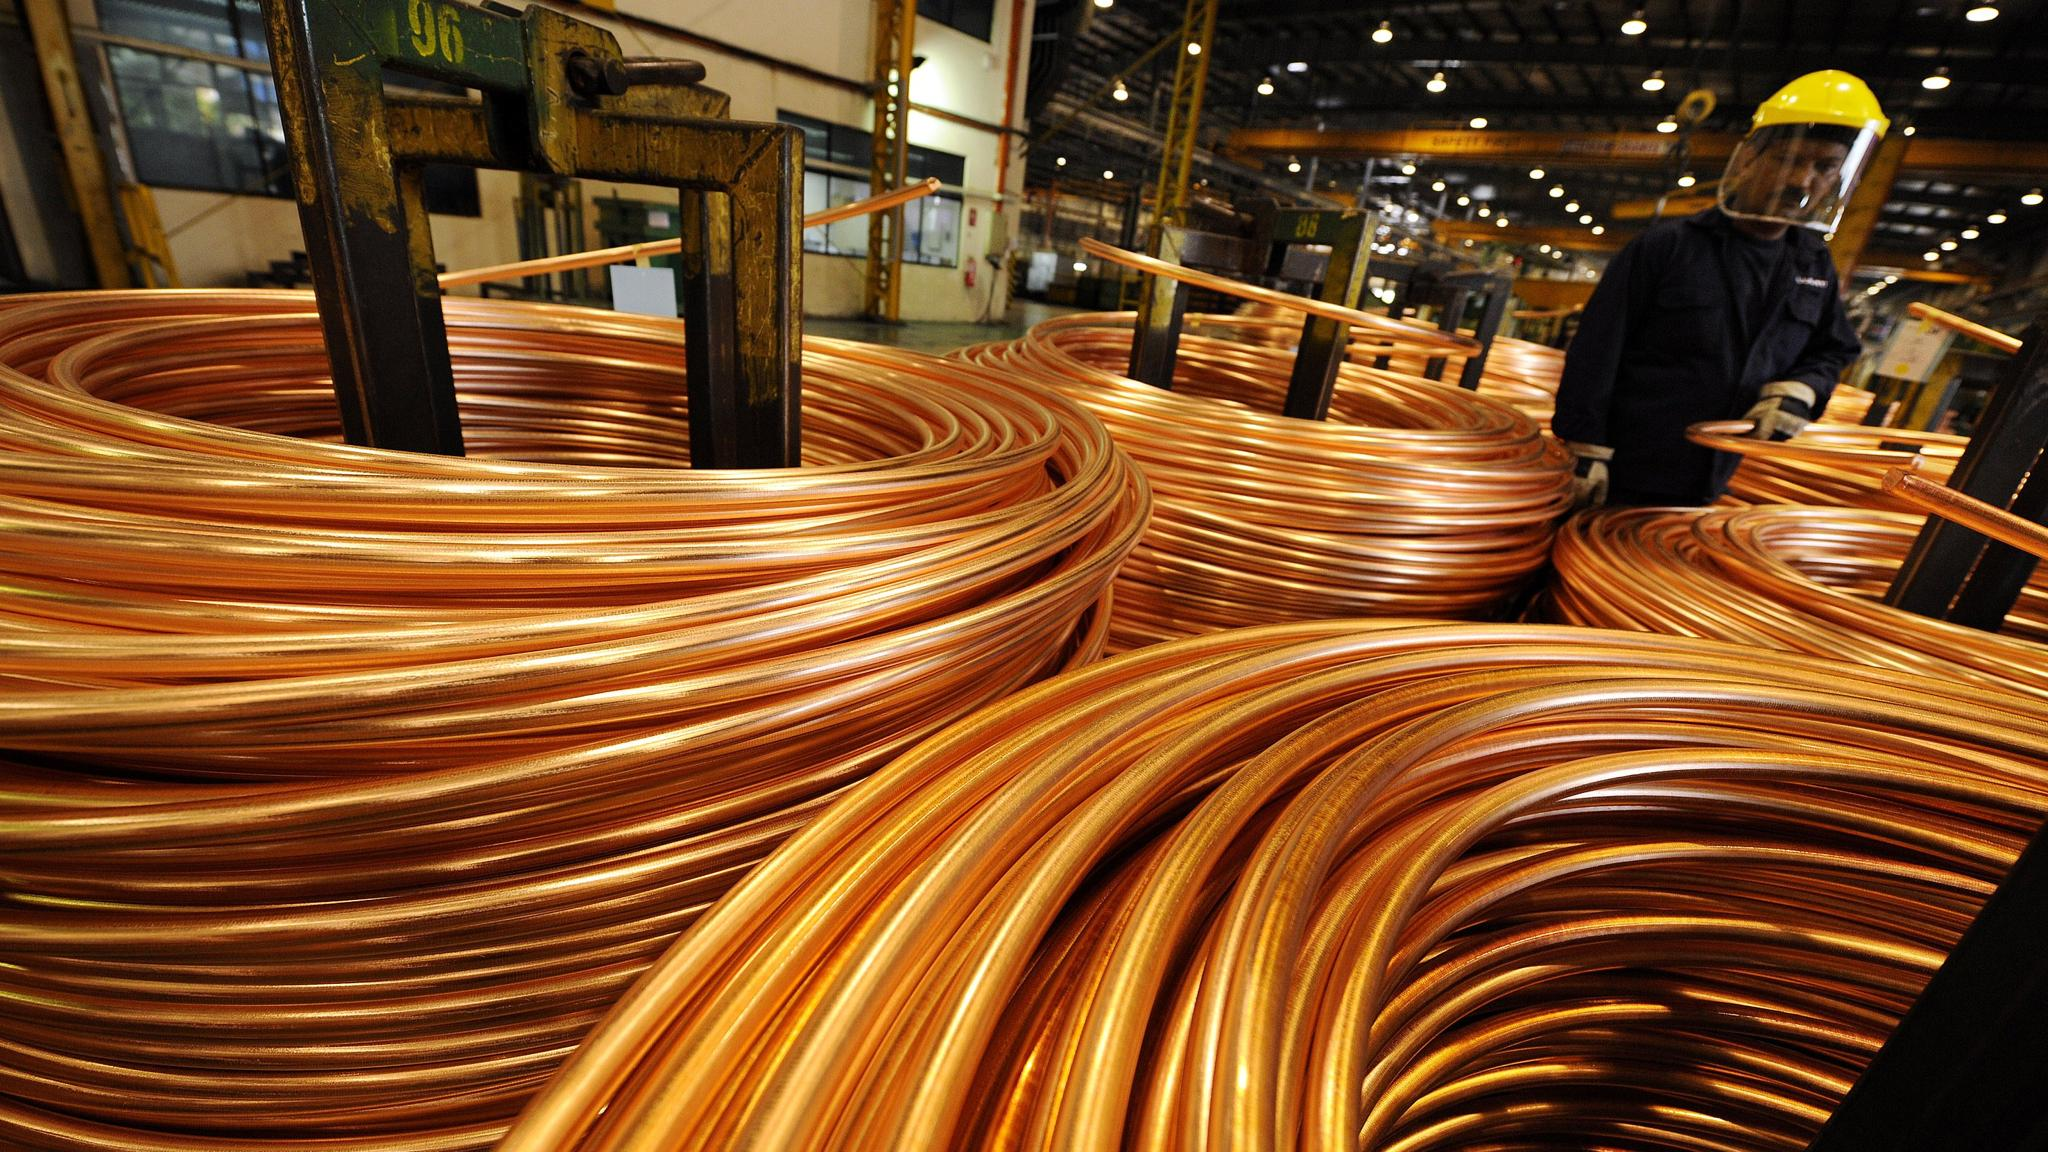 Mercuria Considers Henry Bath Stake Sale Financial Times Sumitomo Electric Wiring Systems Europe Ltd